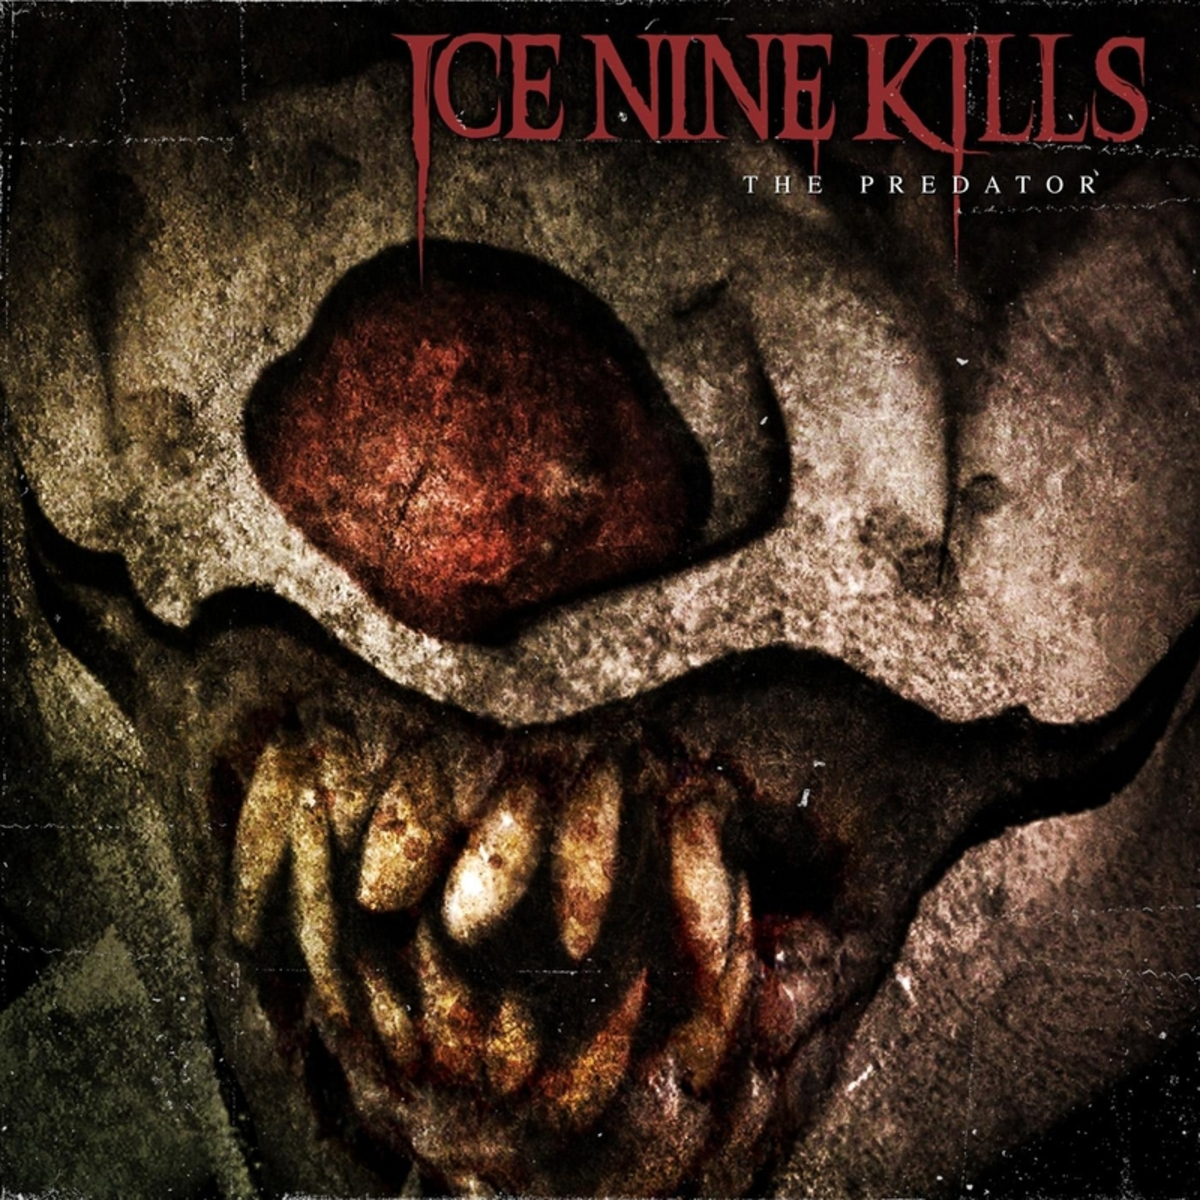 Ice Nine Kills - The Predator [EP] (2012)